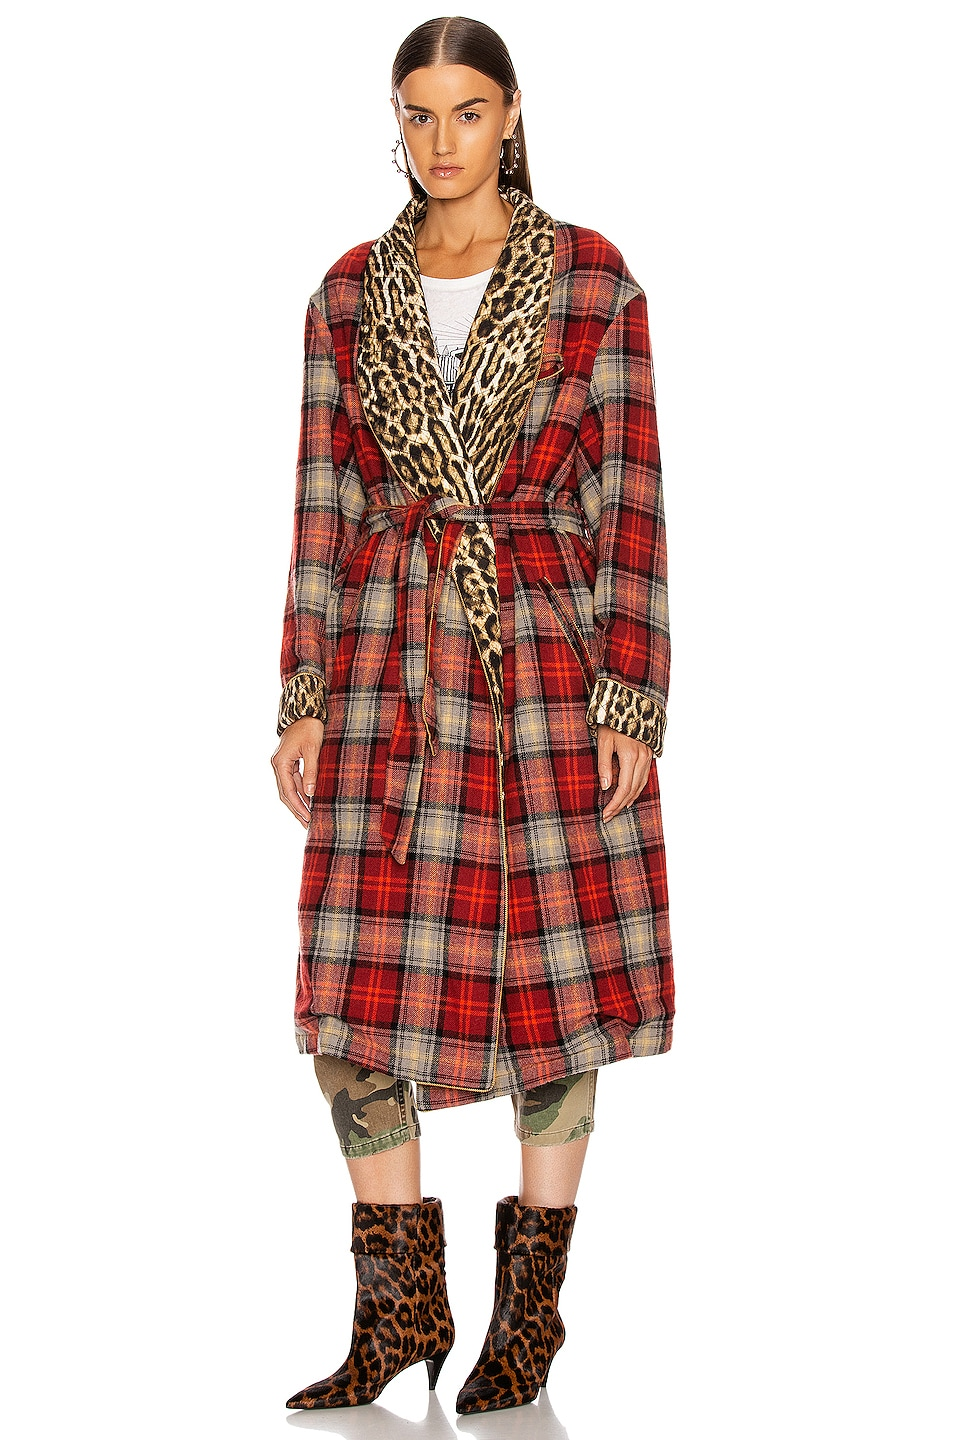 Image 2 of R13 Winter Robe Jacket in Red & Grey Plaid with Leopard